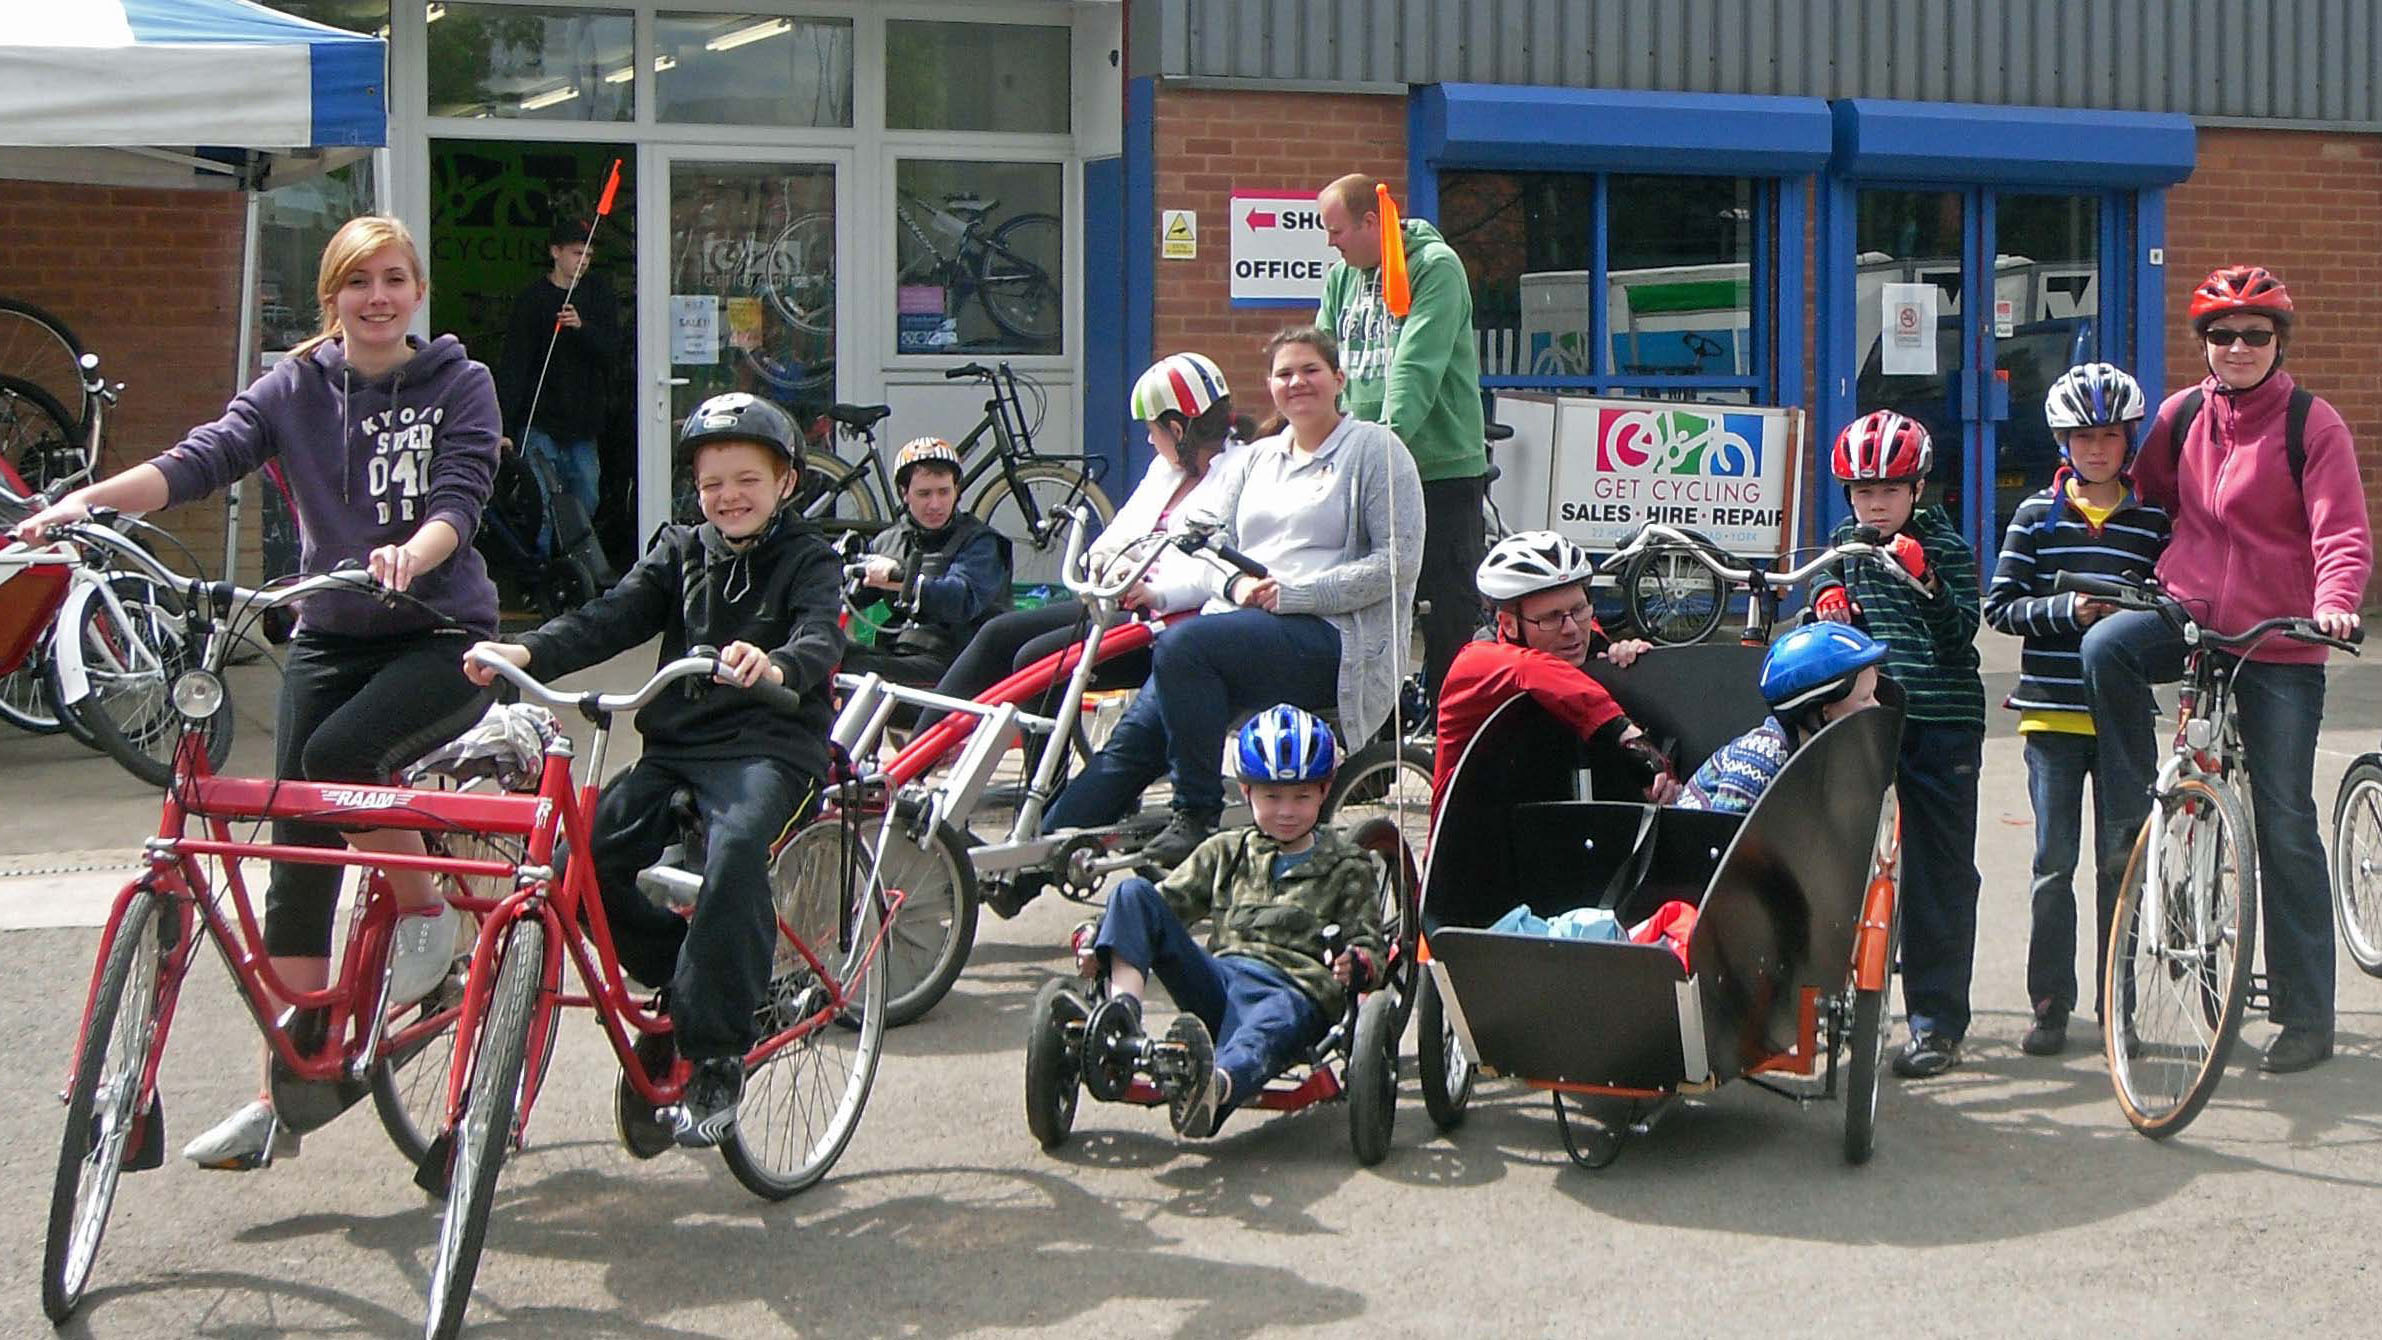 Primary school children at Arbroath will have the opportunity to use a range of bycyles.